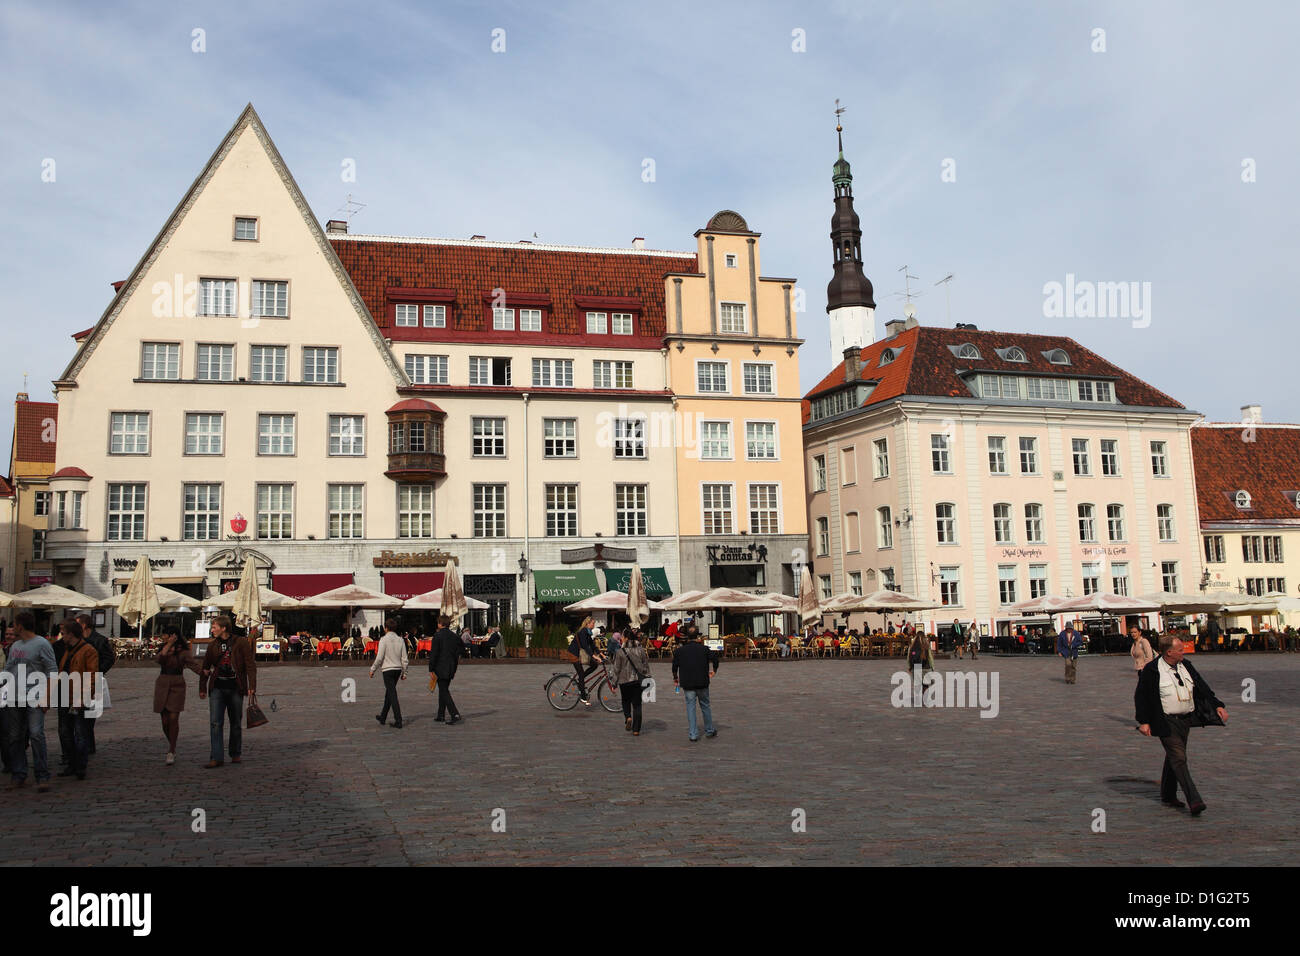 Daily life and buildings on Town Hall Square (Raekoja Plats), UNESCO World Heritage Site, Tallinn, Estonia, Europe - Stock Image